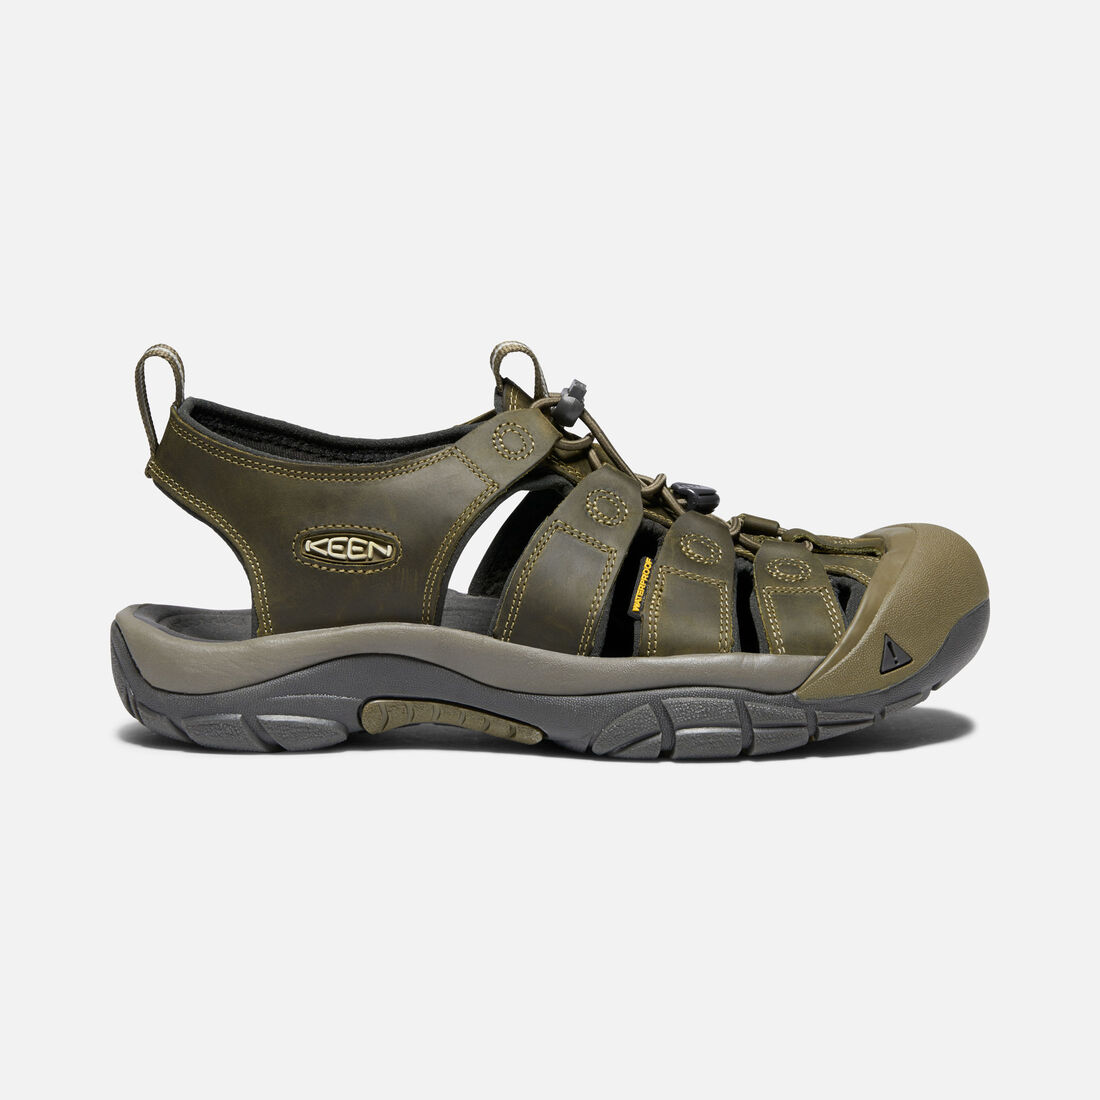 MEN'S NEWPORT SANDALS in FAIRWAY/DARK OLIVE - large view.